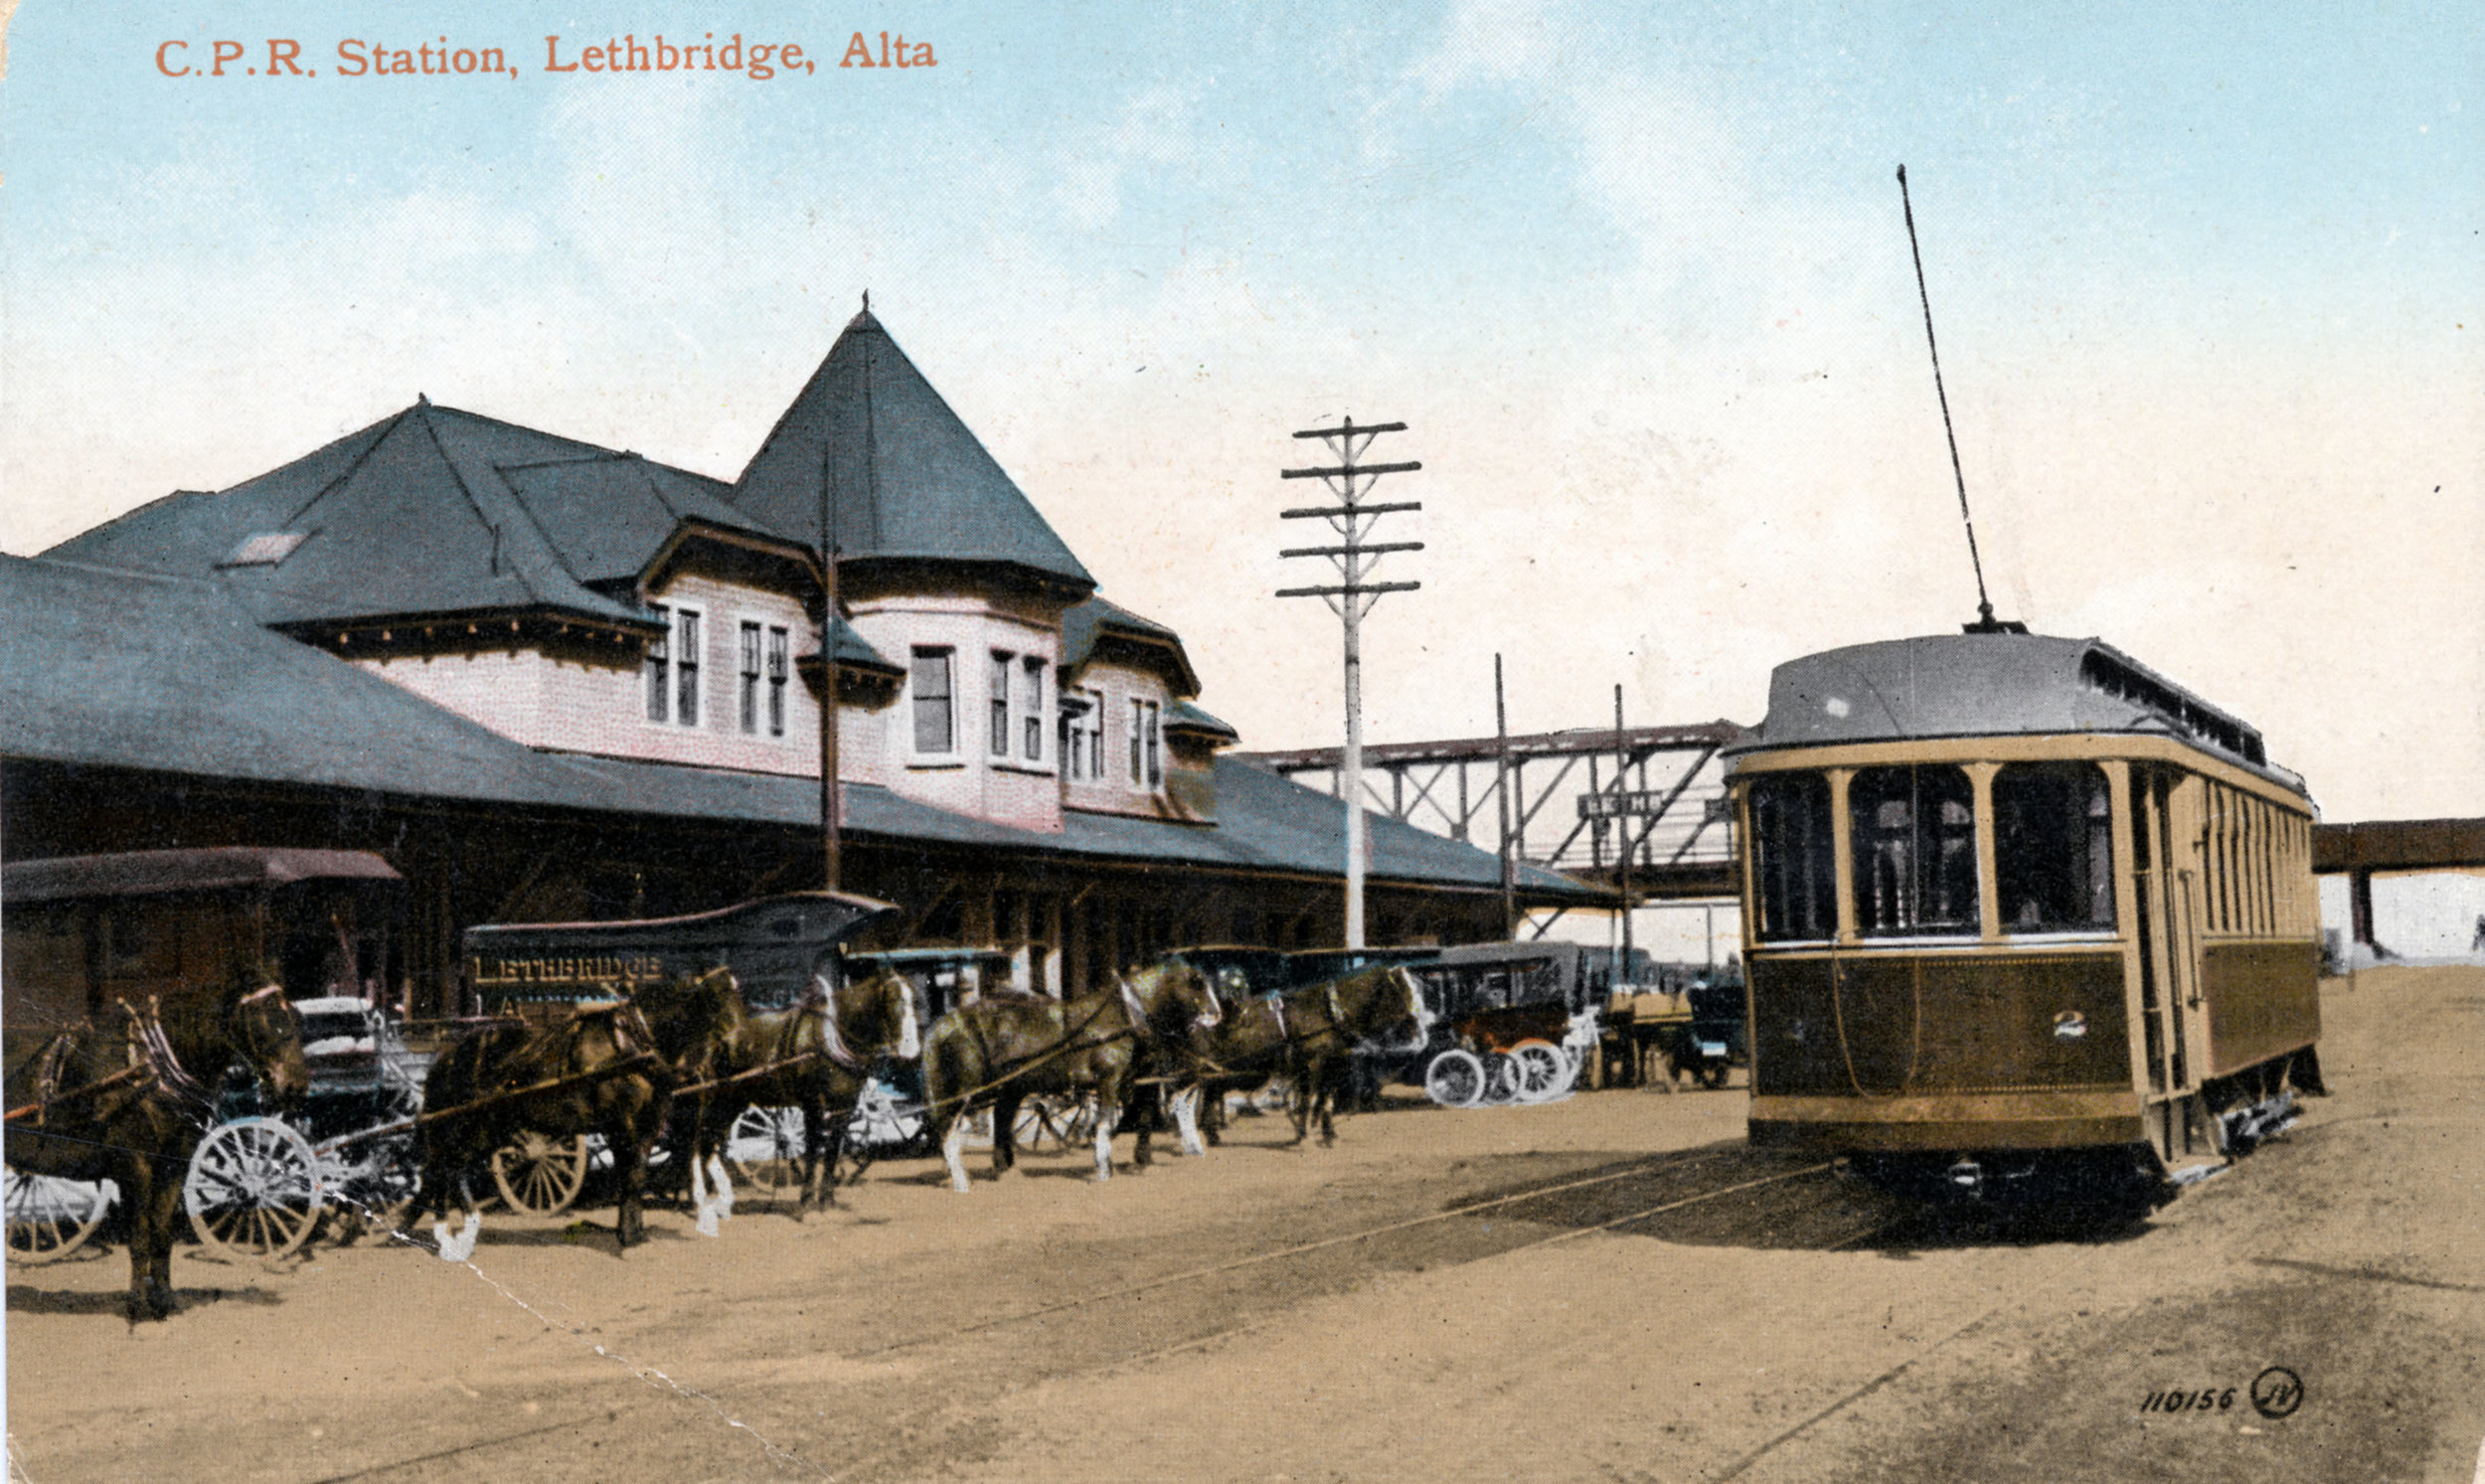 A streetcar, horse and wagons, and automobiles in front of the Canadian Pacific Railway (CPR) station on 1 Avenue South Lethbridge in 1915.